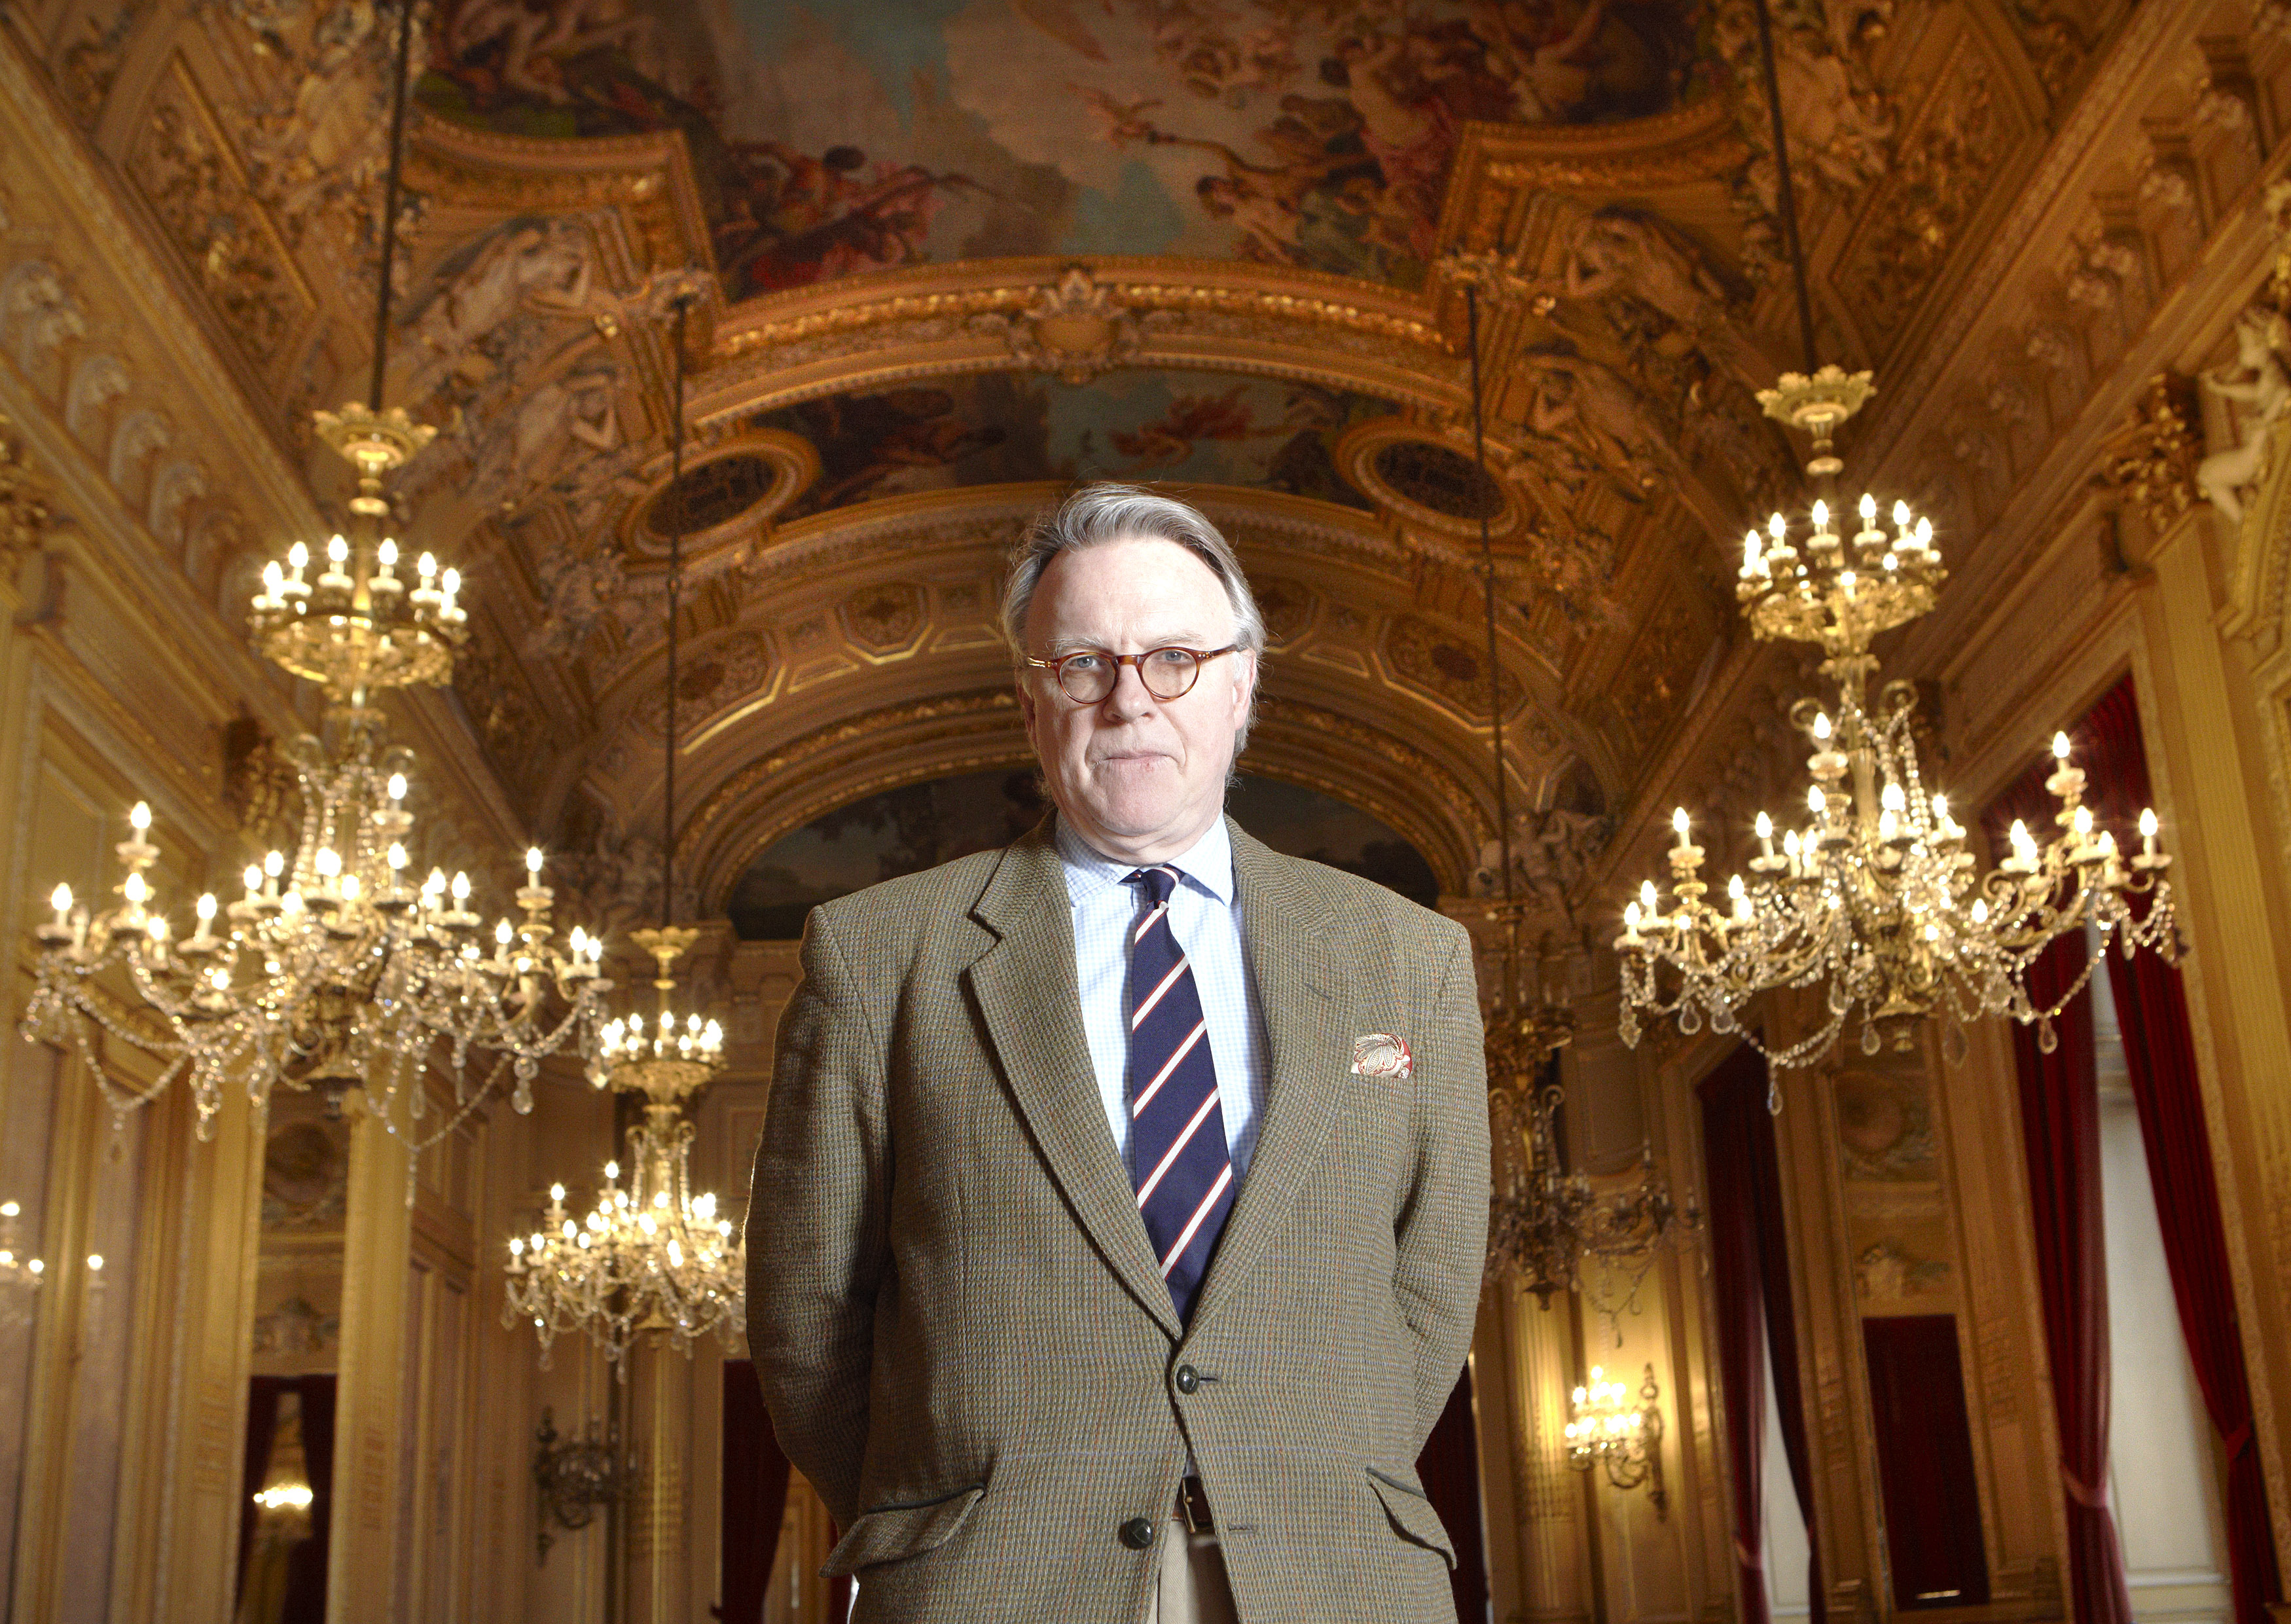 Tobias Richter, Director, poses in the foyer of the Grand Theater in Geneva, Dec. 9, 2011.